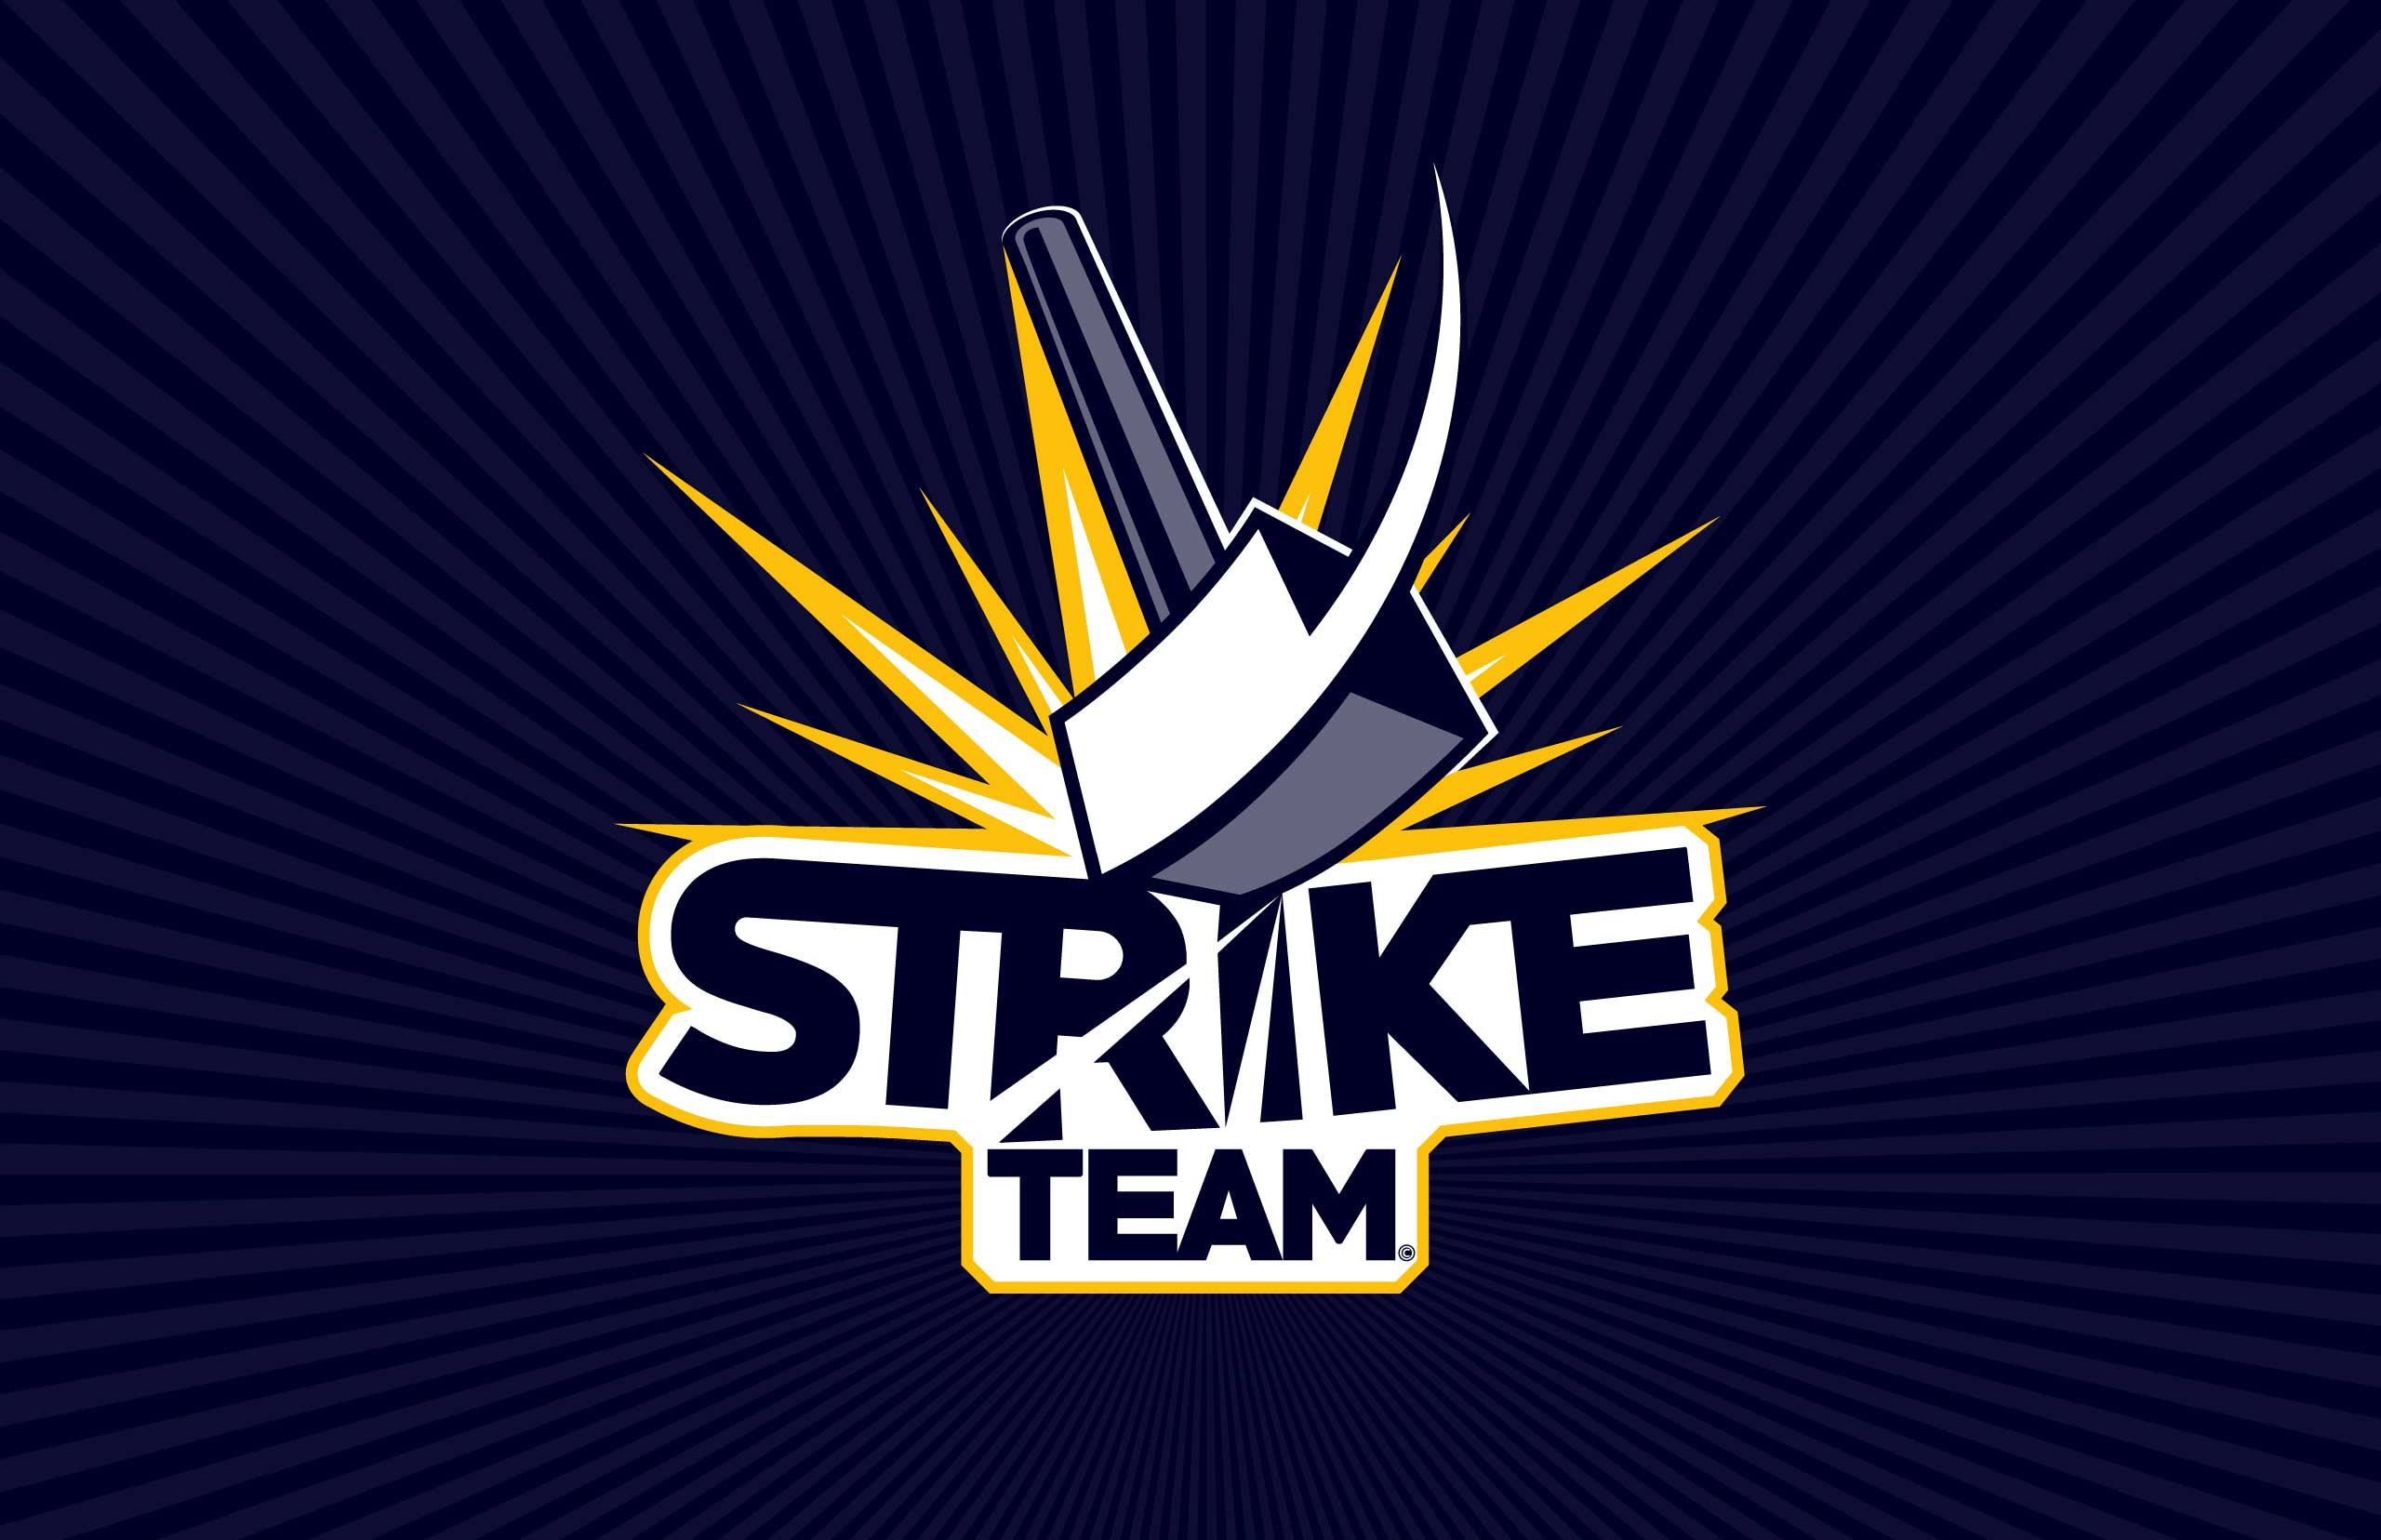 Strike Team logo for eSports team.